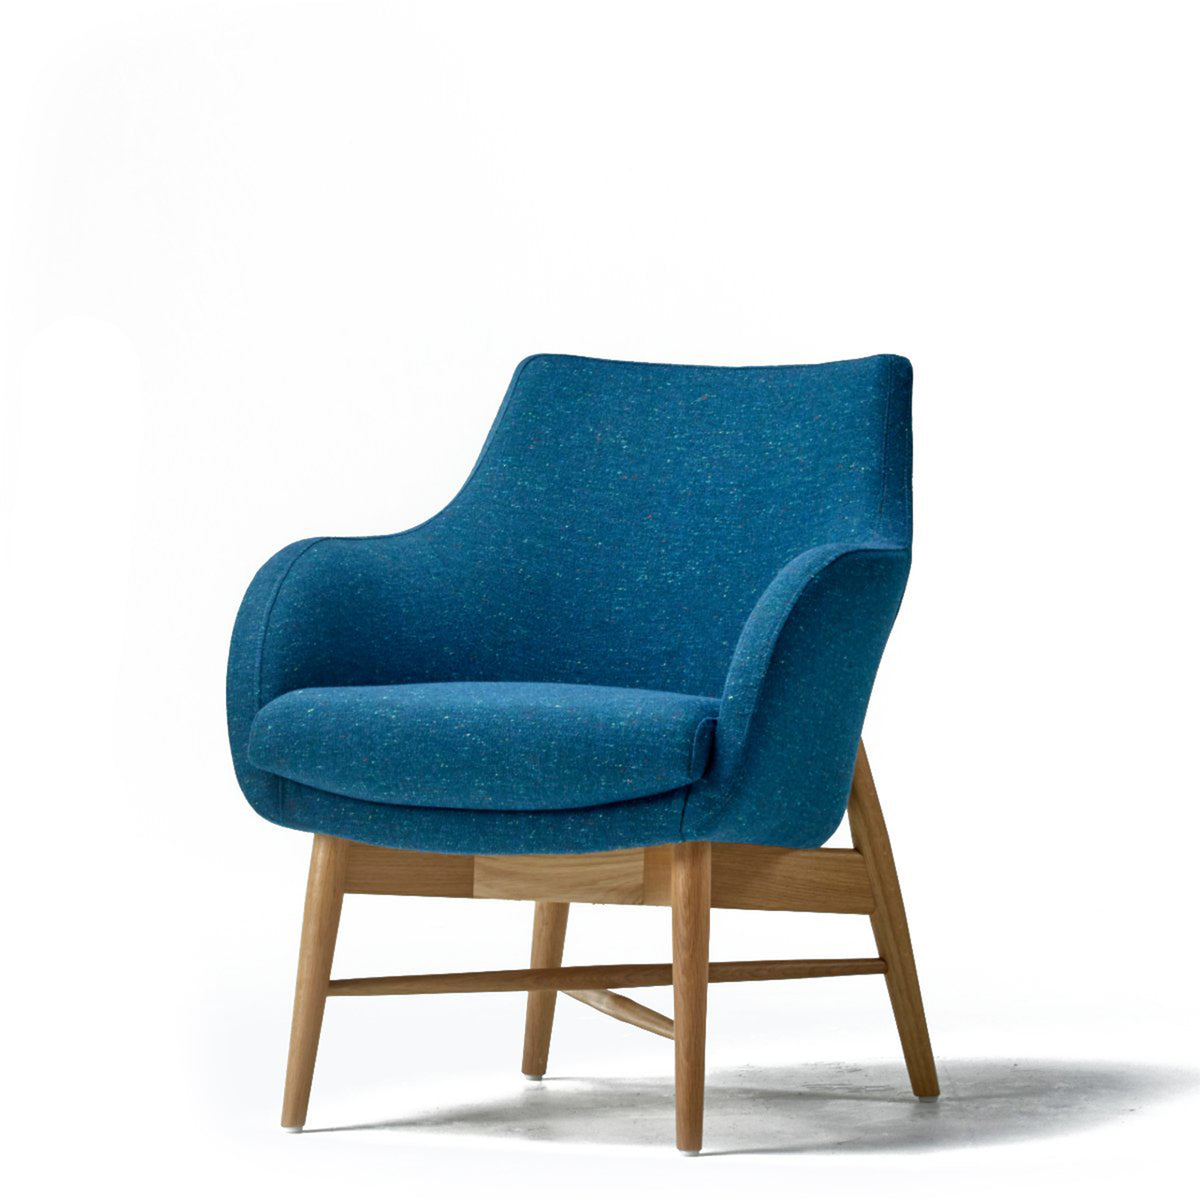 Roger Lewis Office Sintra Compact Chair Timber Base